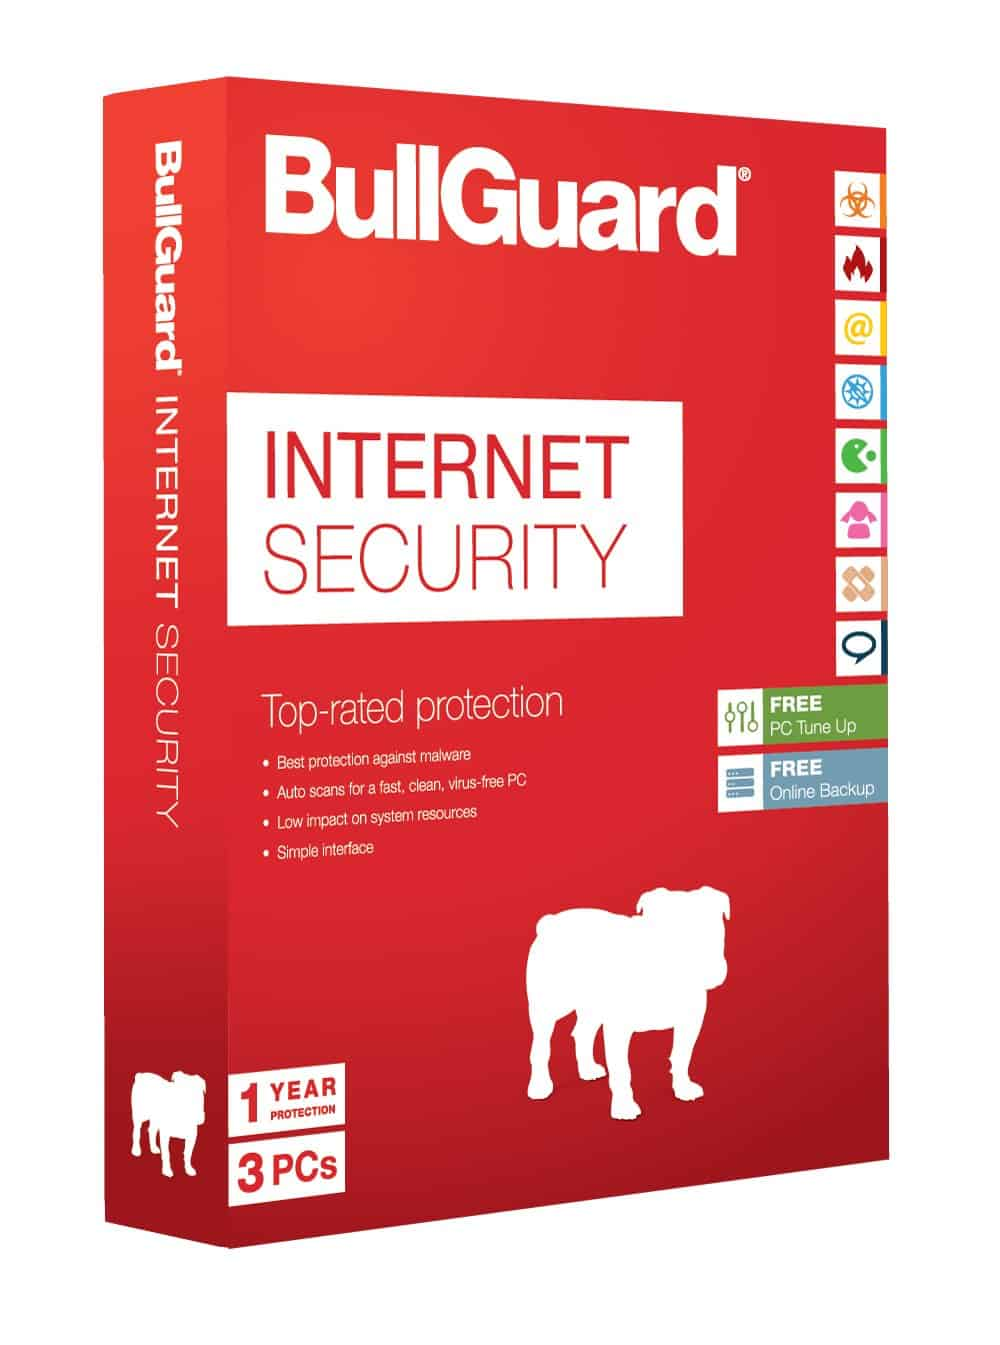 Bullguard internet security products